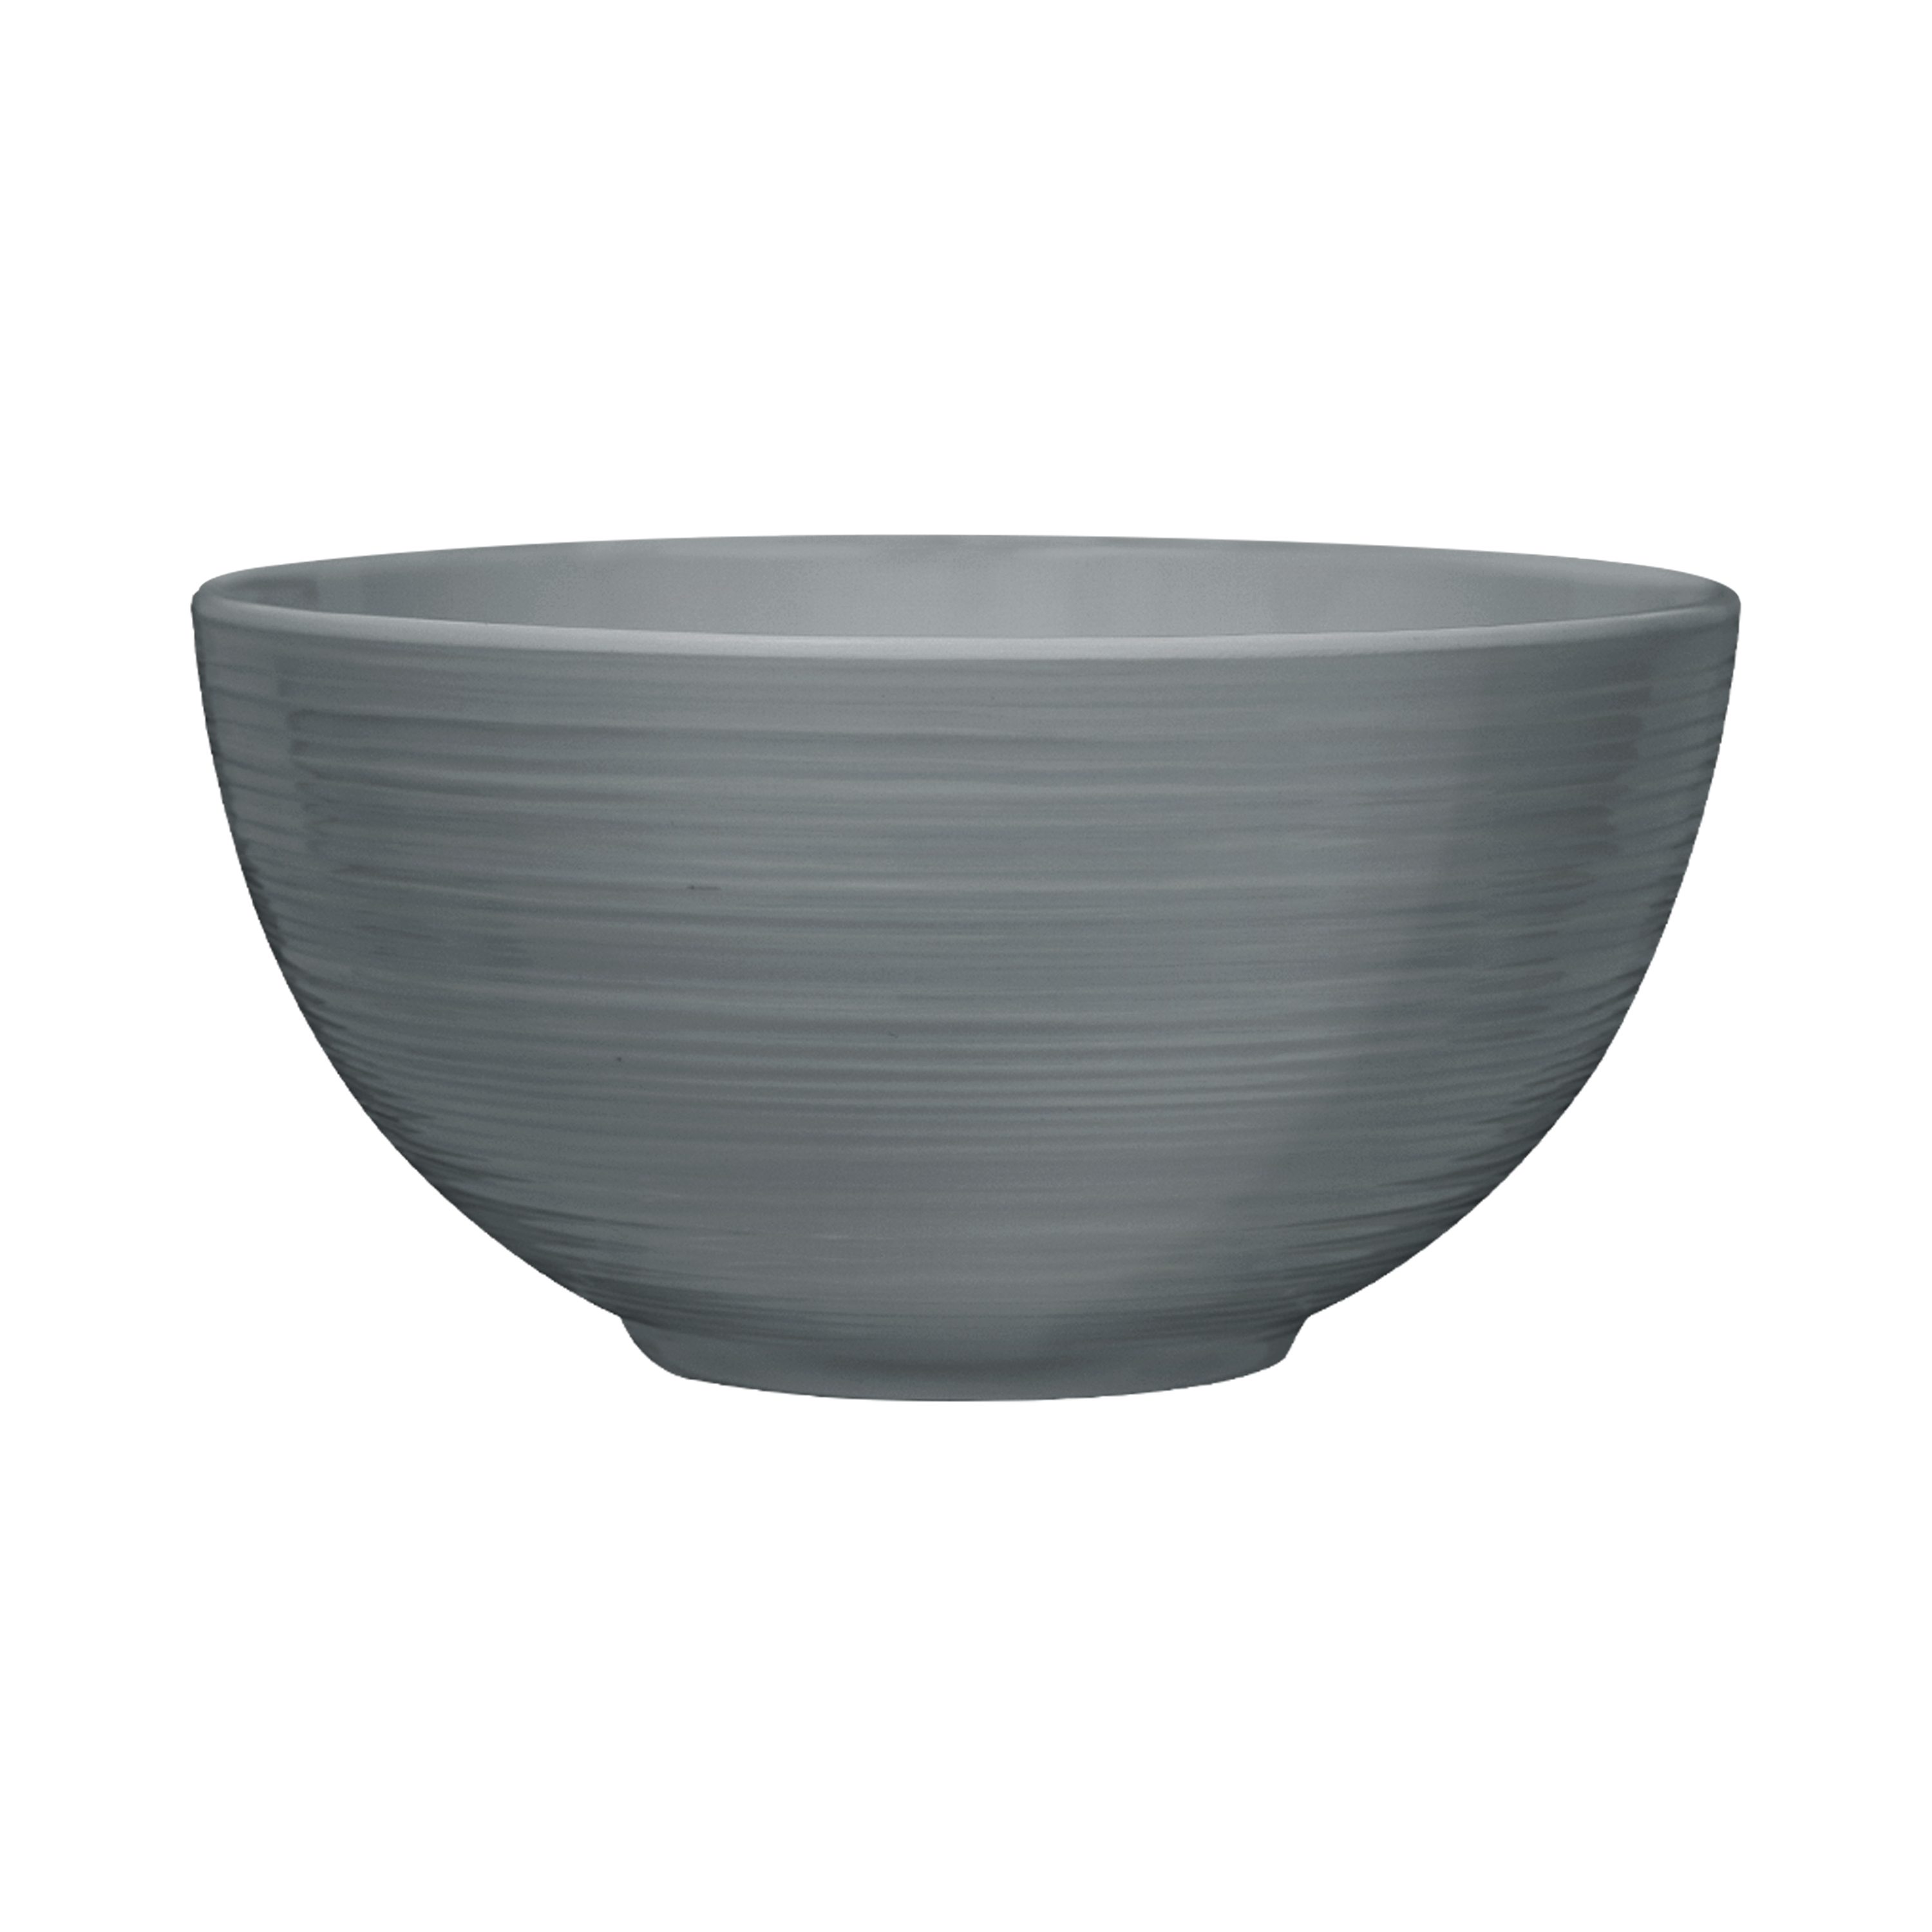 American Conventional Plate & Bowl Sets, Charcoal, 12-piece set slideshow image 13